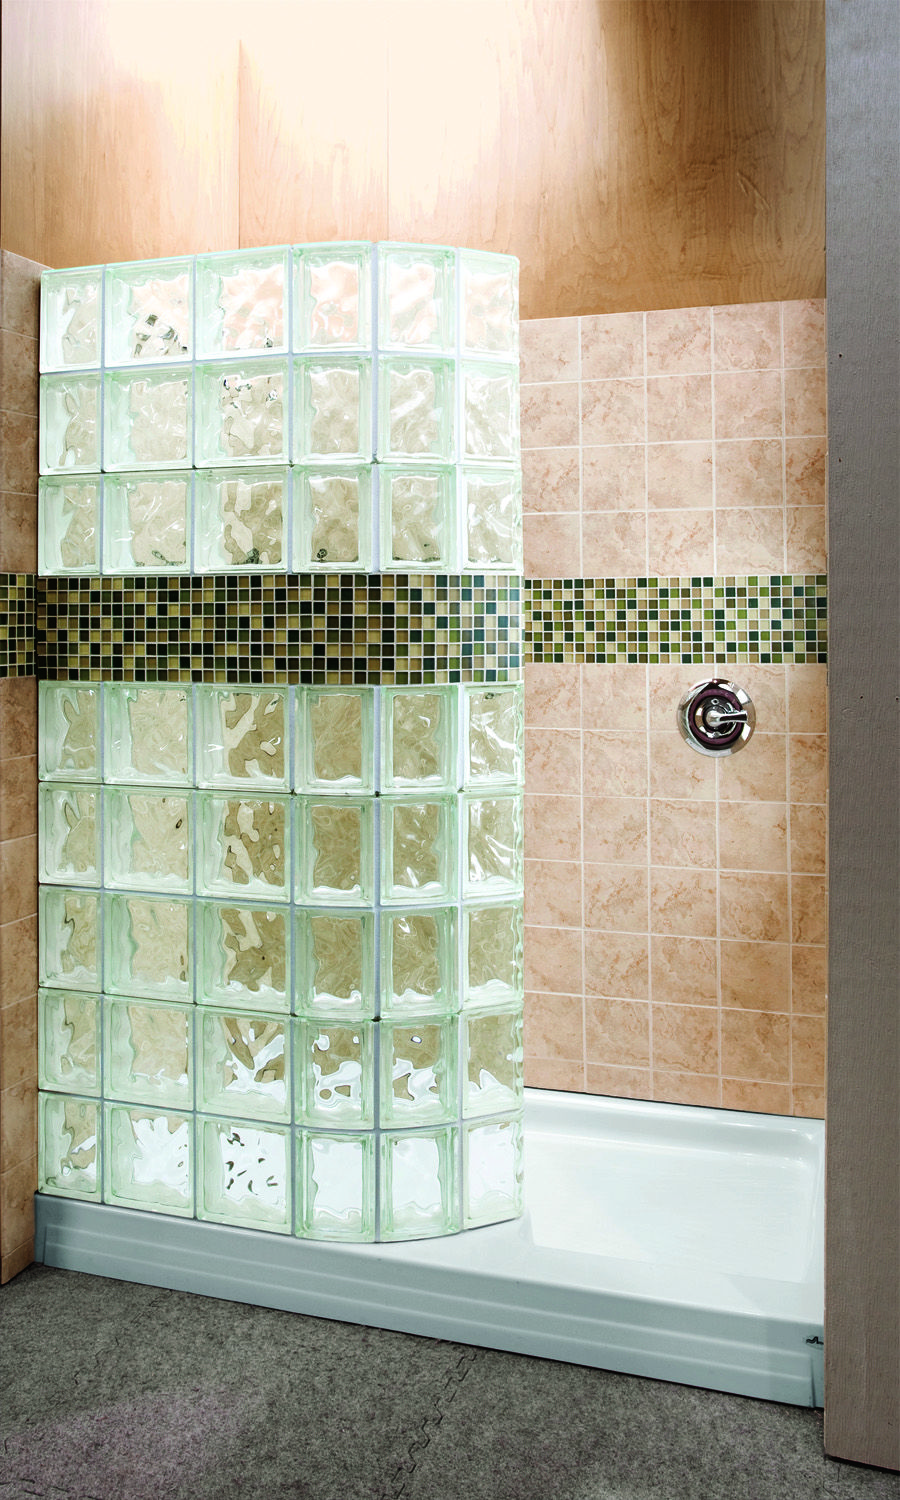 Glass block walls in bathrooms - Curved Glass Block Walk In Shower For A Bath To Shower Conversion